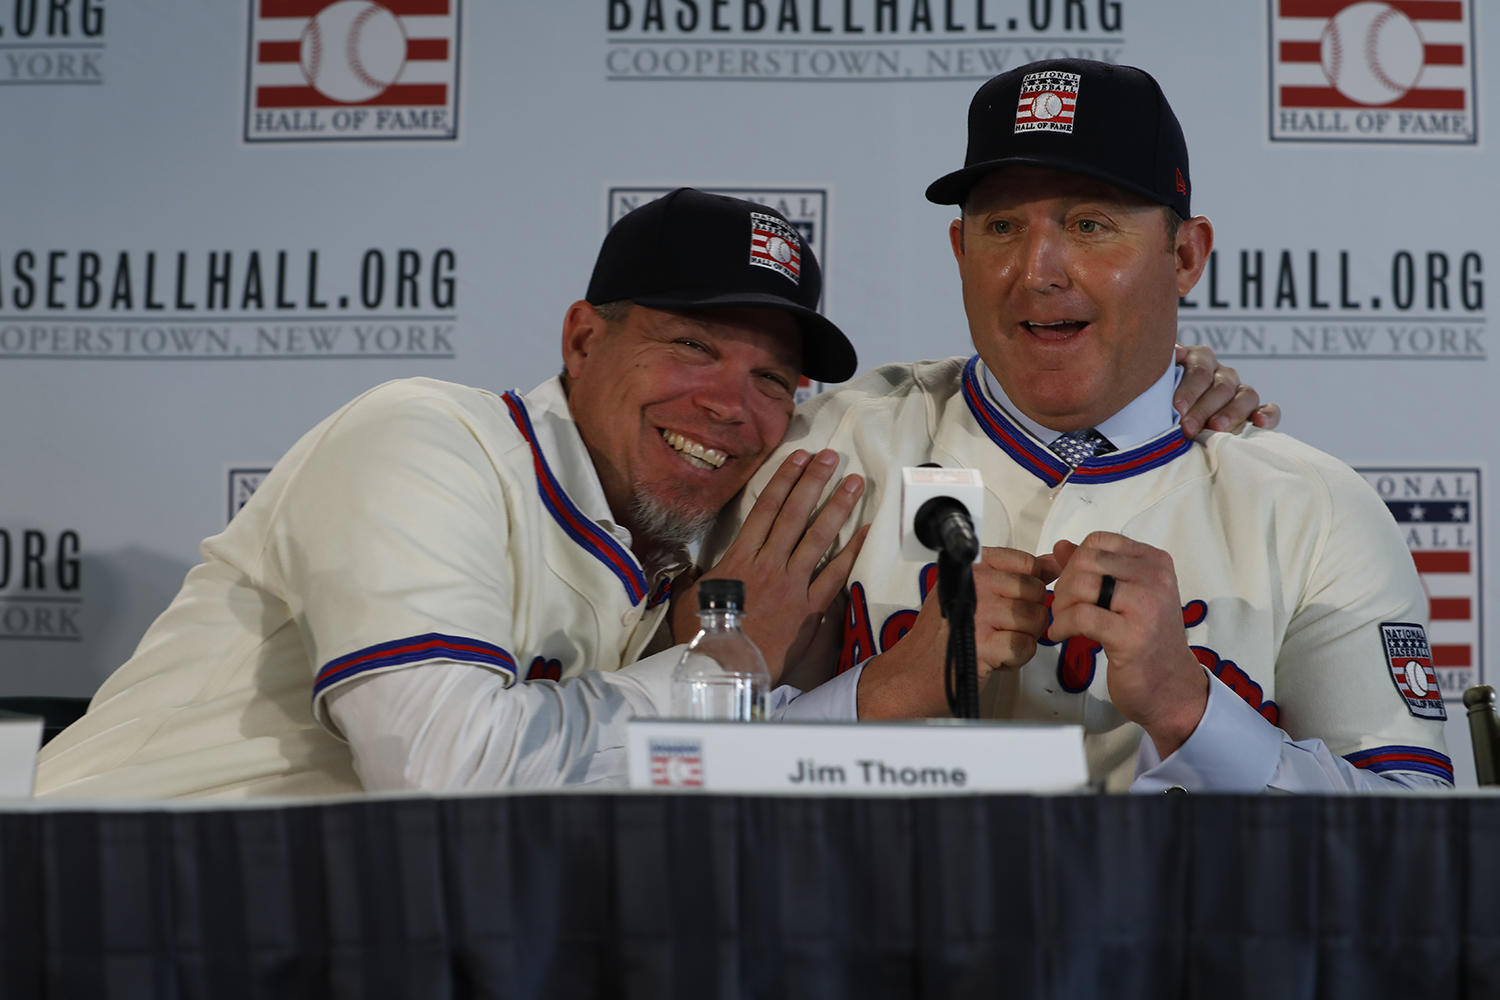 Chipper Jones (left) shares a laugh with Jim Thome during the 2018 Hall of Fame Inductee Press Conference. (Milo Stewart Jr./National Baseball Hall of Fame and Museum)